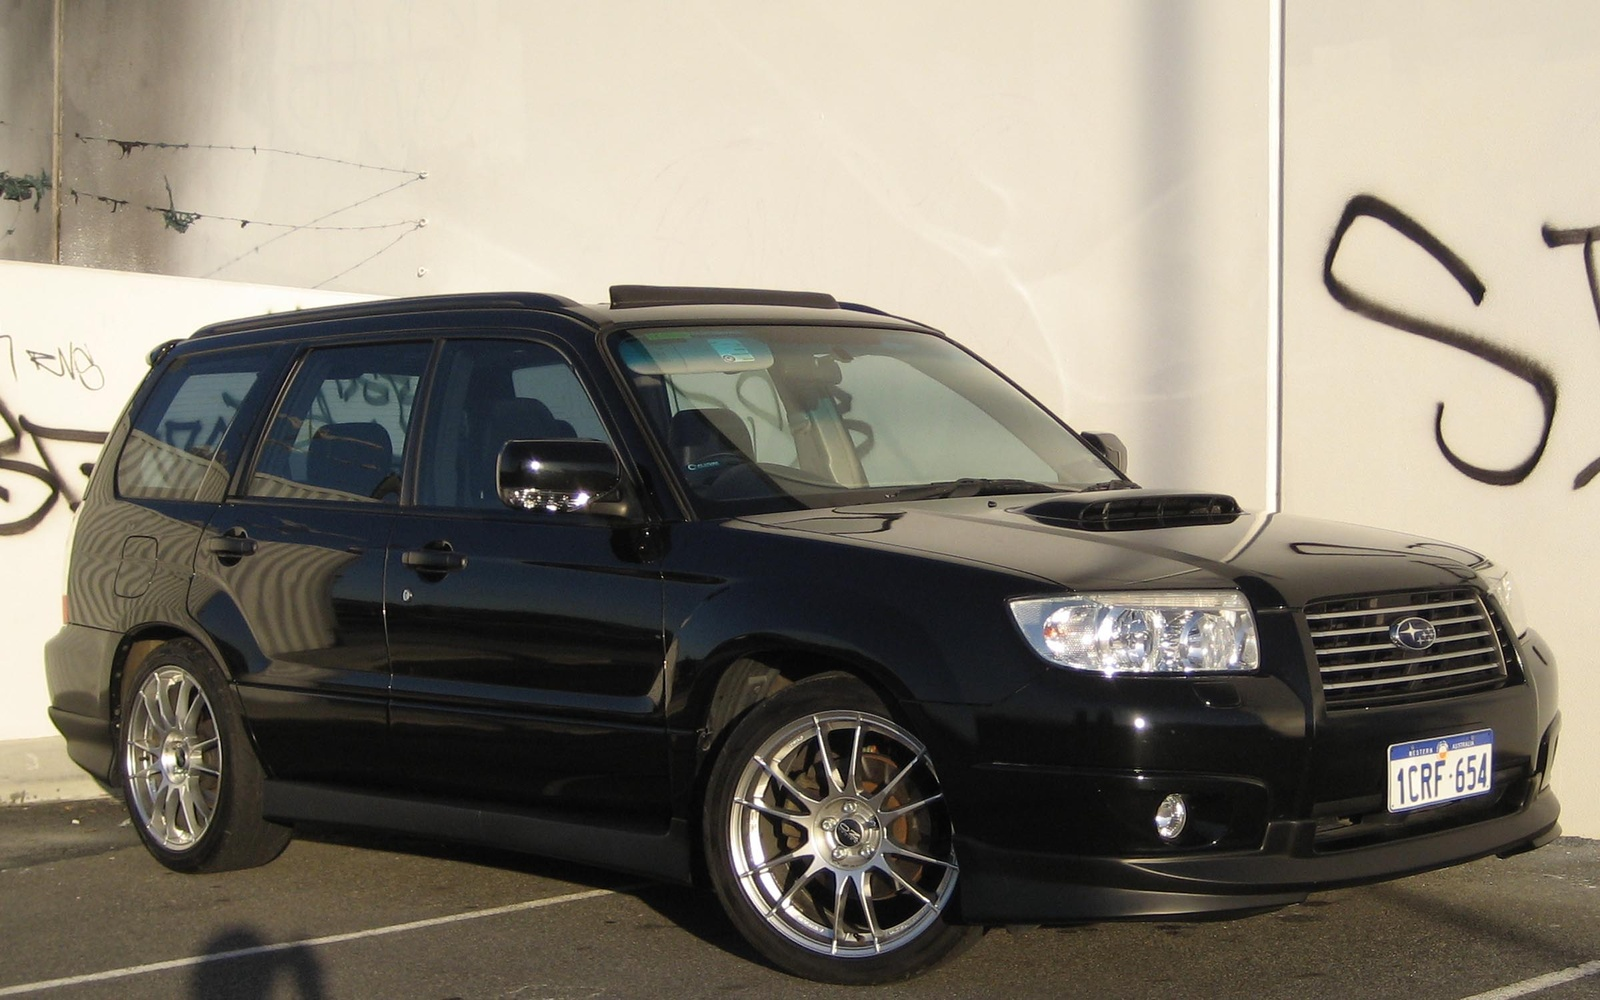 2000 subaru forester slammed with 2006 Subaru Forester Pictures C5826 Pi20237942 on 1998 Forester L My Work Progress 102919 furthermore 224008 Pics Of Bagged Minis 3 together with Getting It Jays Bagged Subaru Legacy Outback in addition 2113 Tuning Audi A4 B5 moreover What Exactly Available Lifting Usdm Forester 484609.